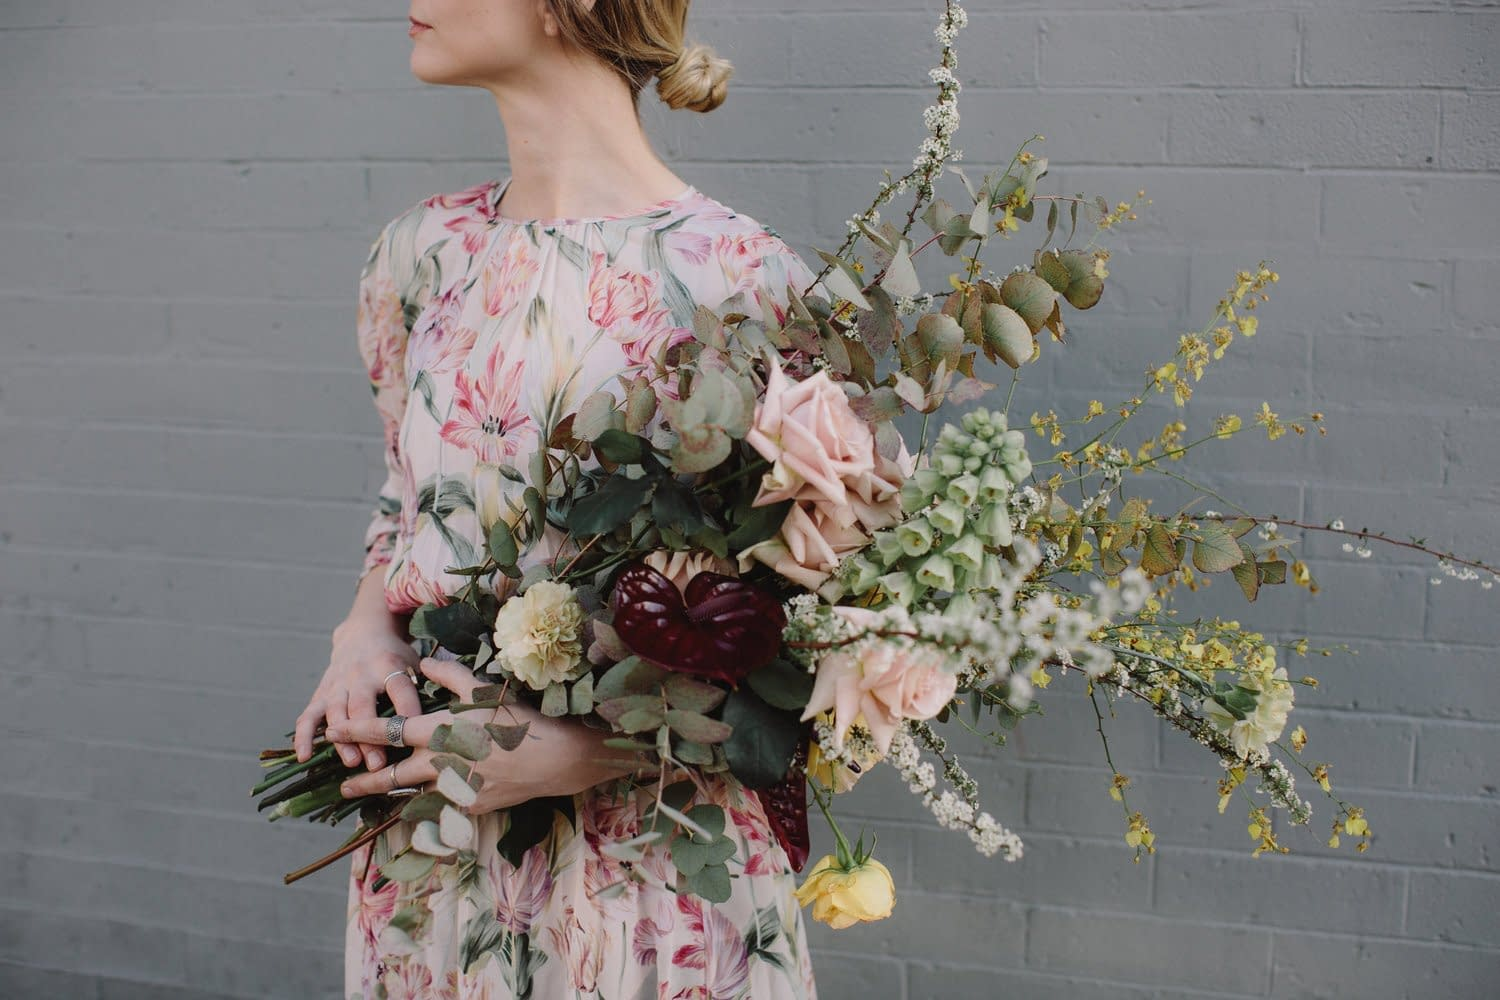 A simple spring bridal bouquet of March flowers in a neutral color palette by Nectar and Root, Vermont wedding florist in Brooklyn, New York.